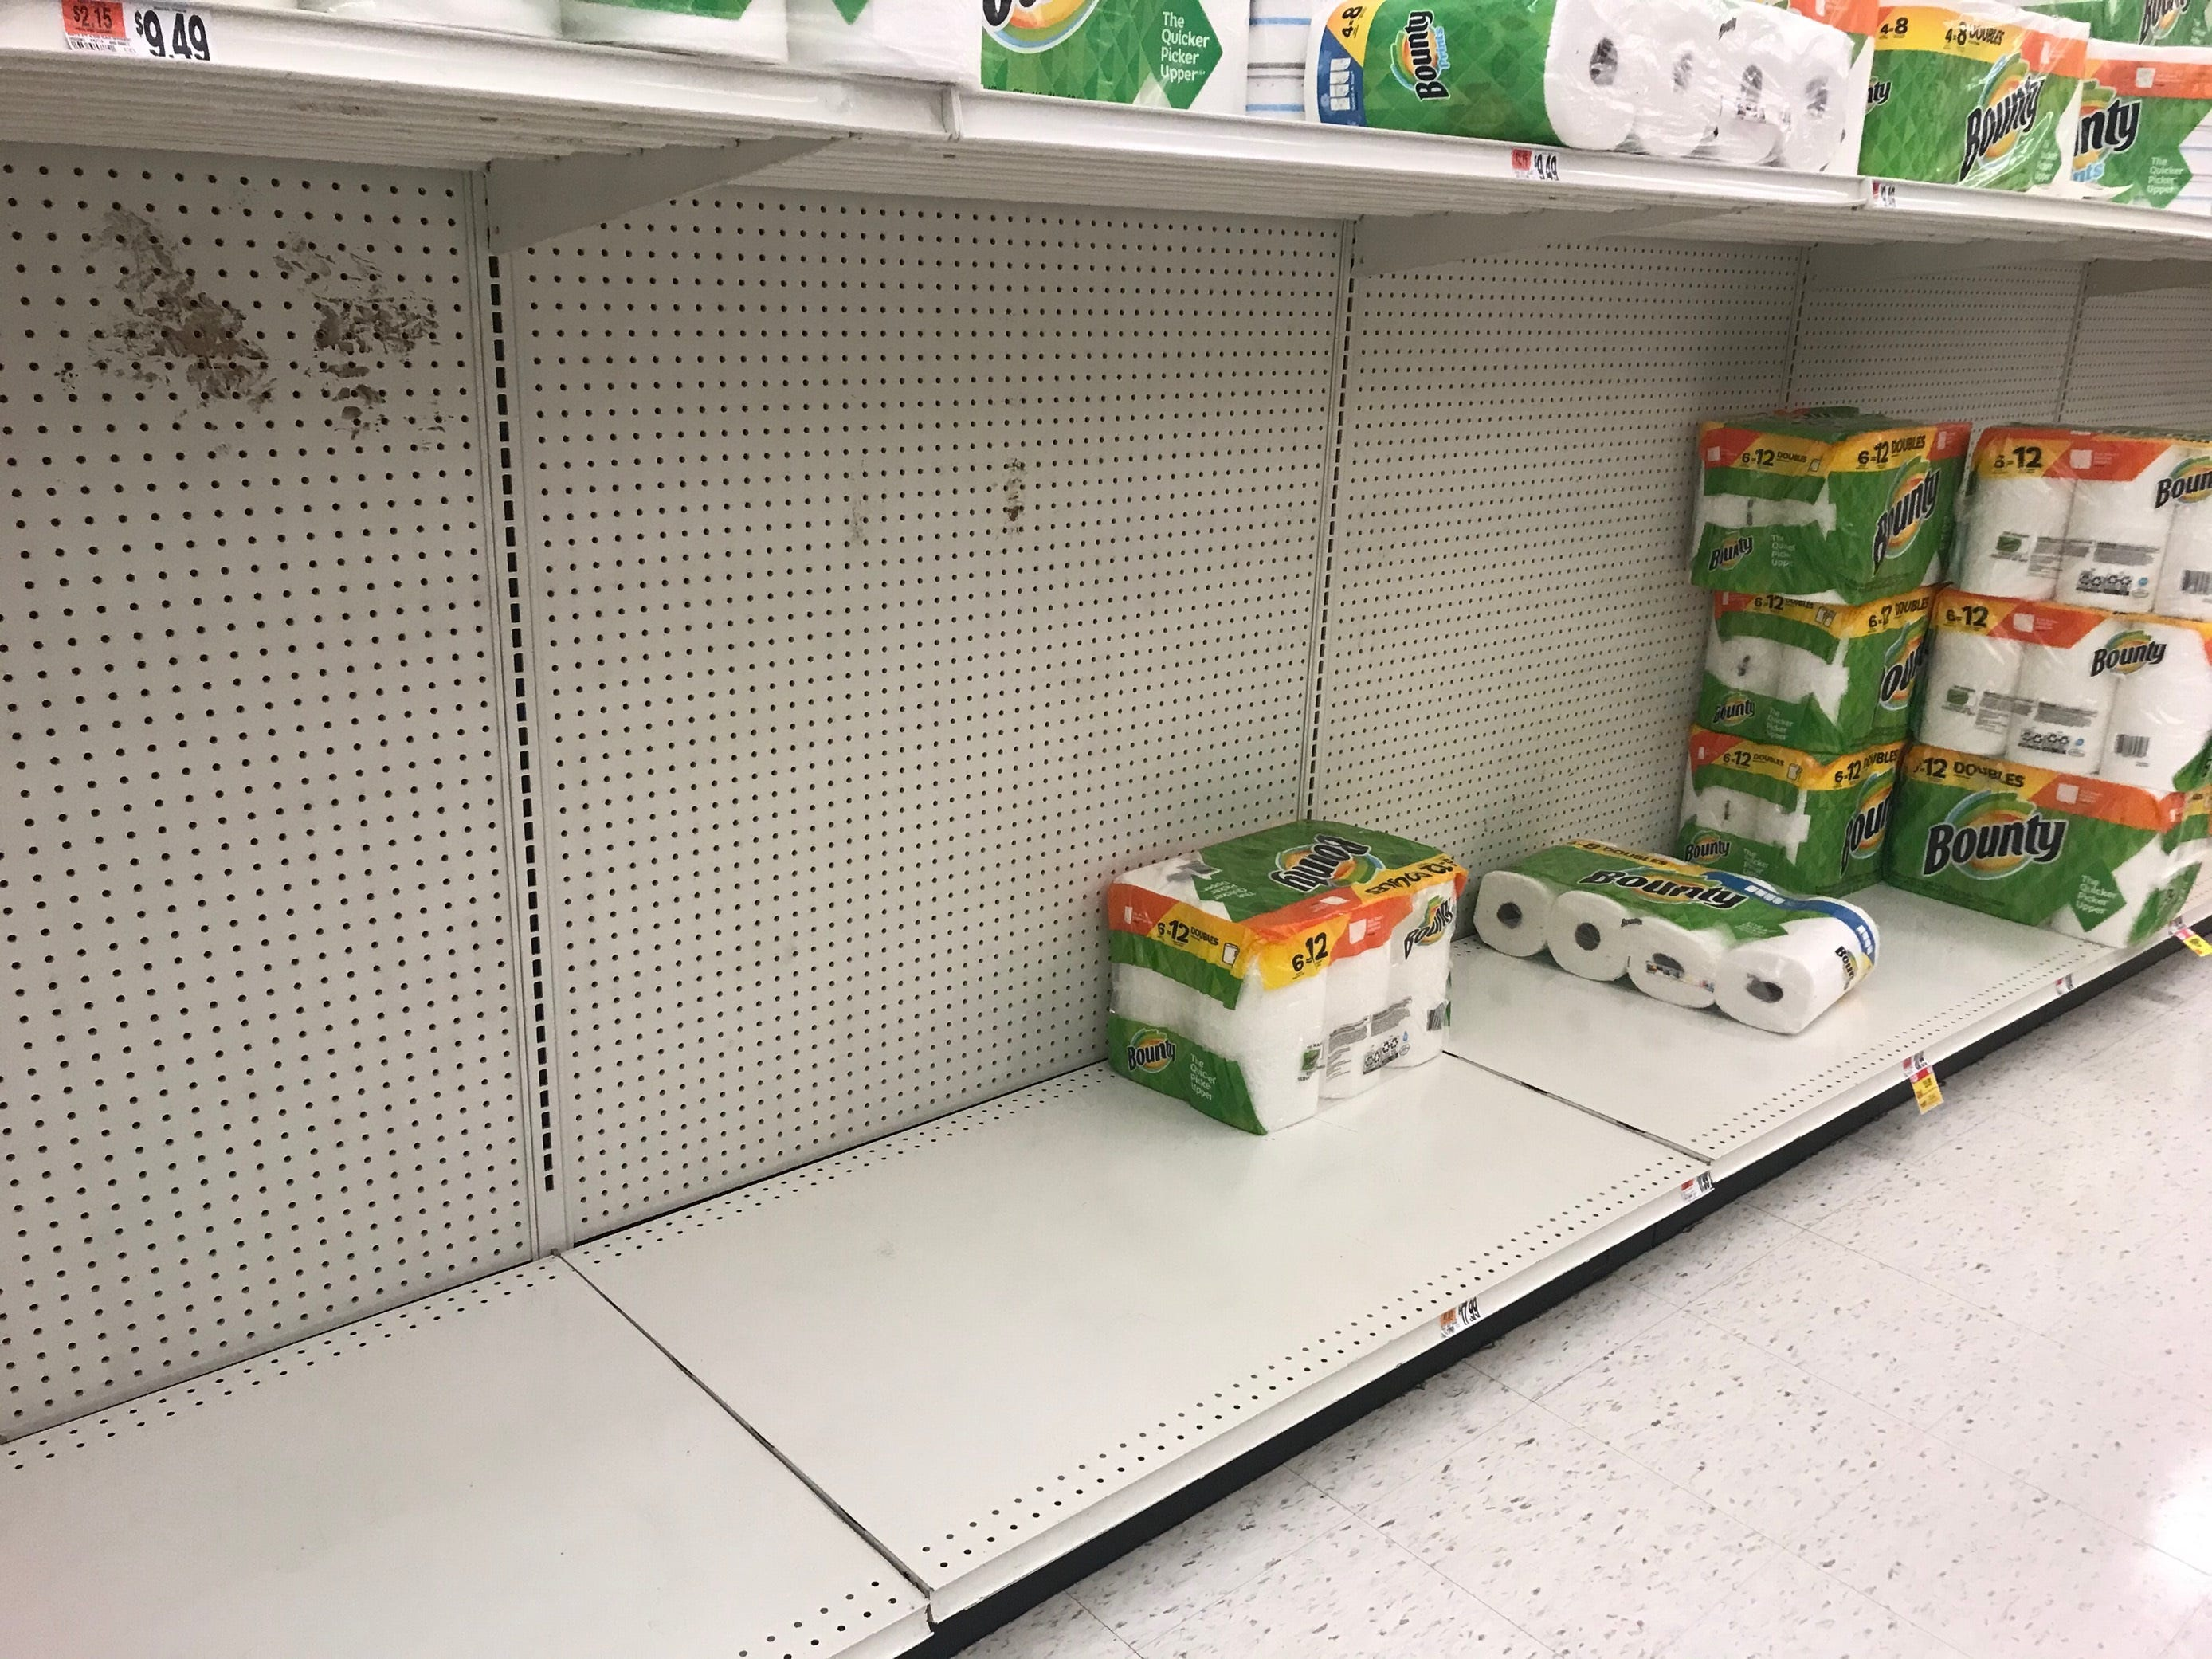 Empty shelves at a Stop & Shop on Lakewood Road in Toms River as buyers prepared to deal with the coronavirus. Thursday, March 12, 2020